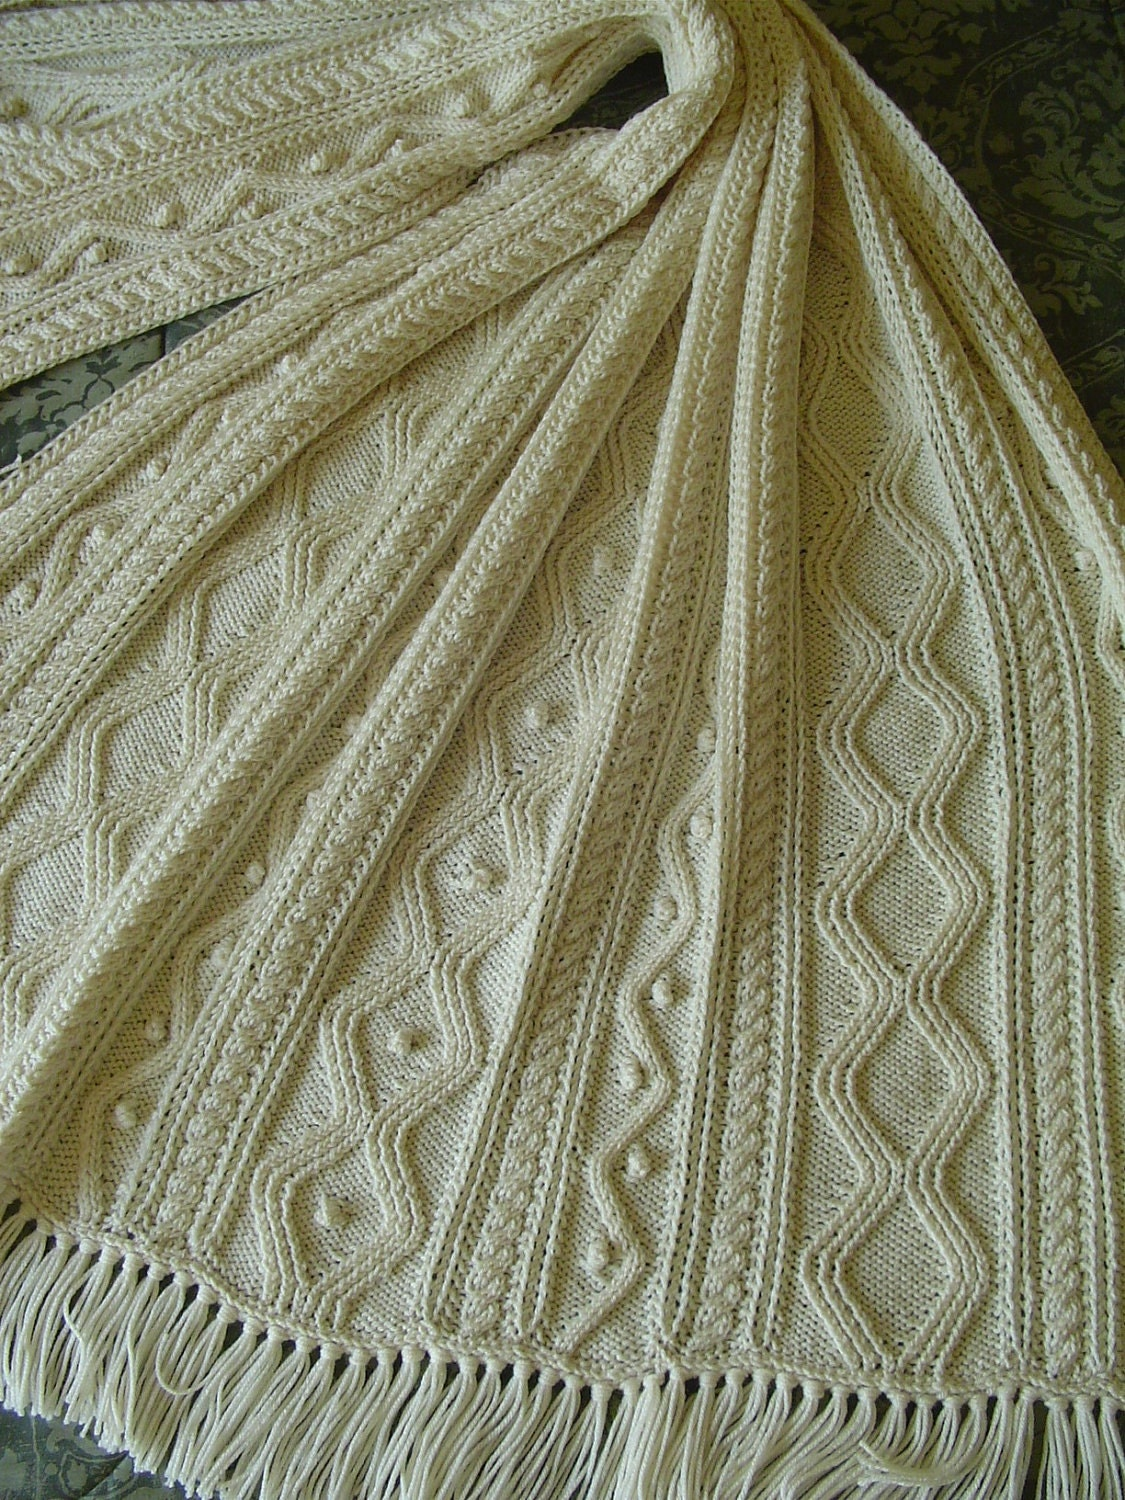 Diamond Afghan Knitting Pattern : Afghan Aran Hand Knit Diamonds Cables and Bobbles